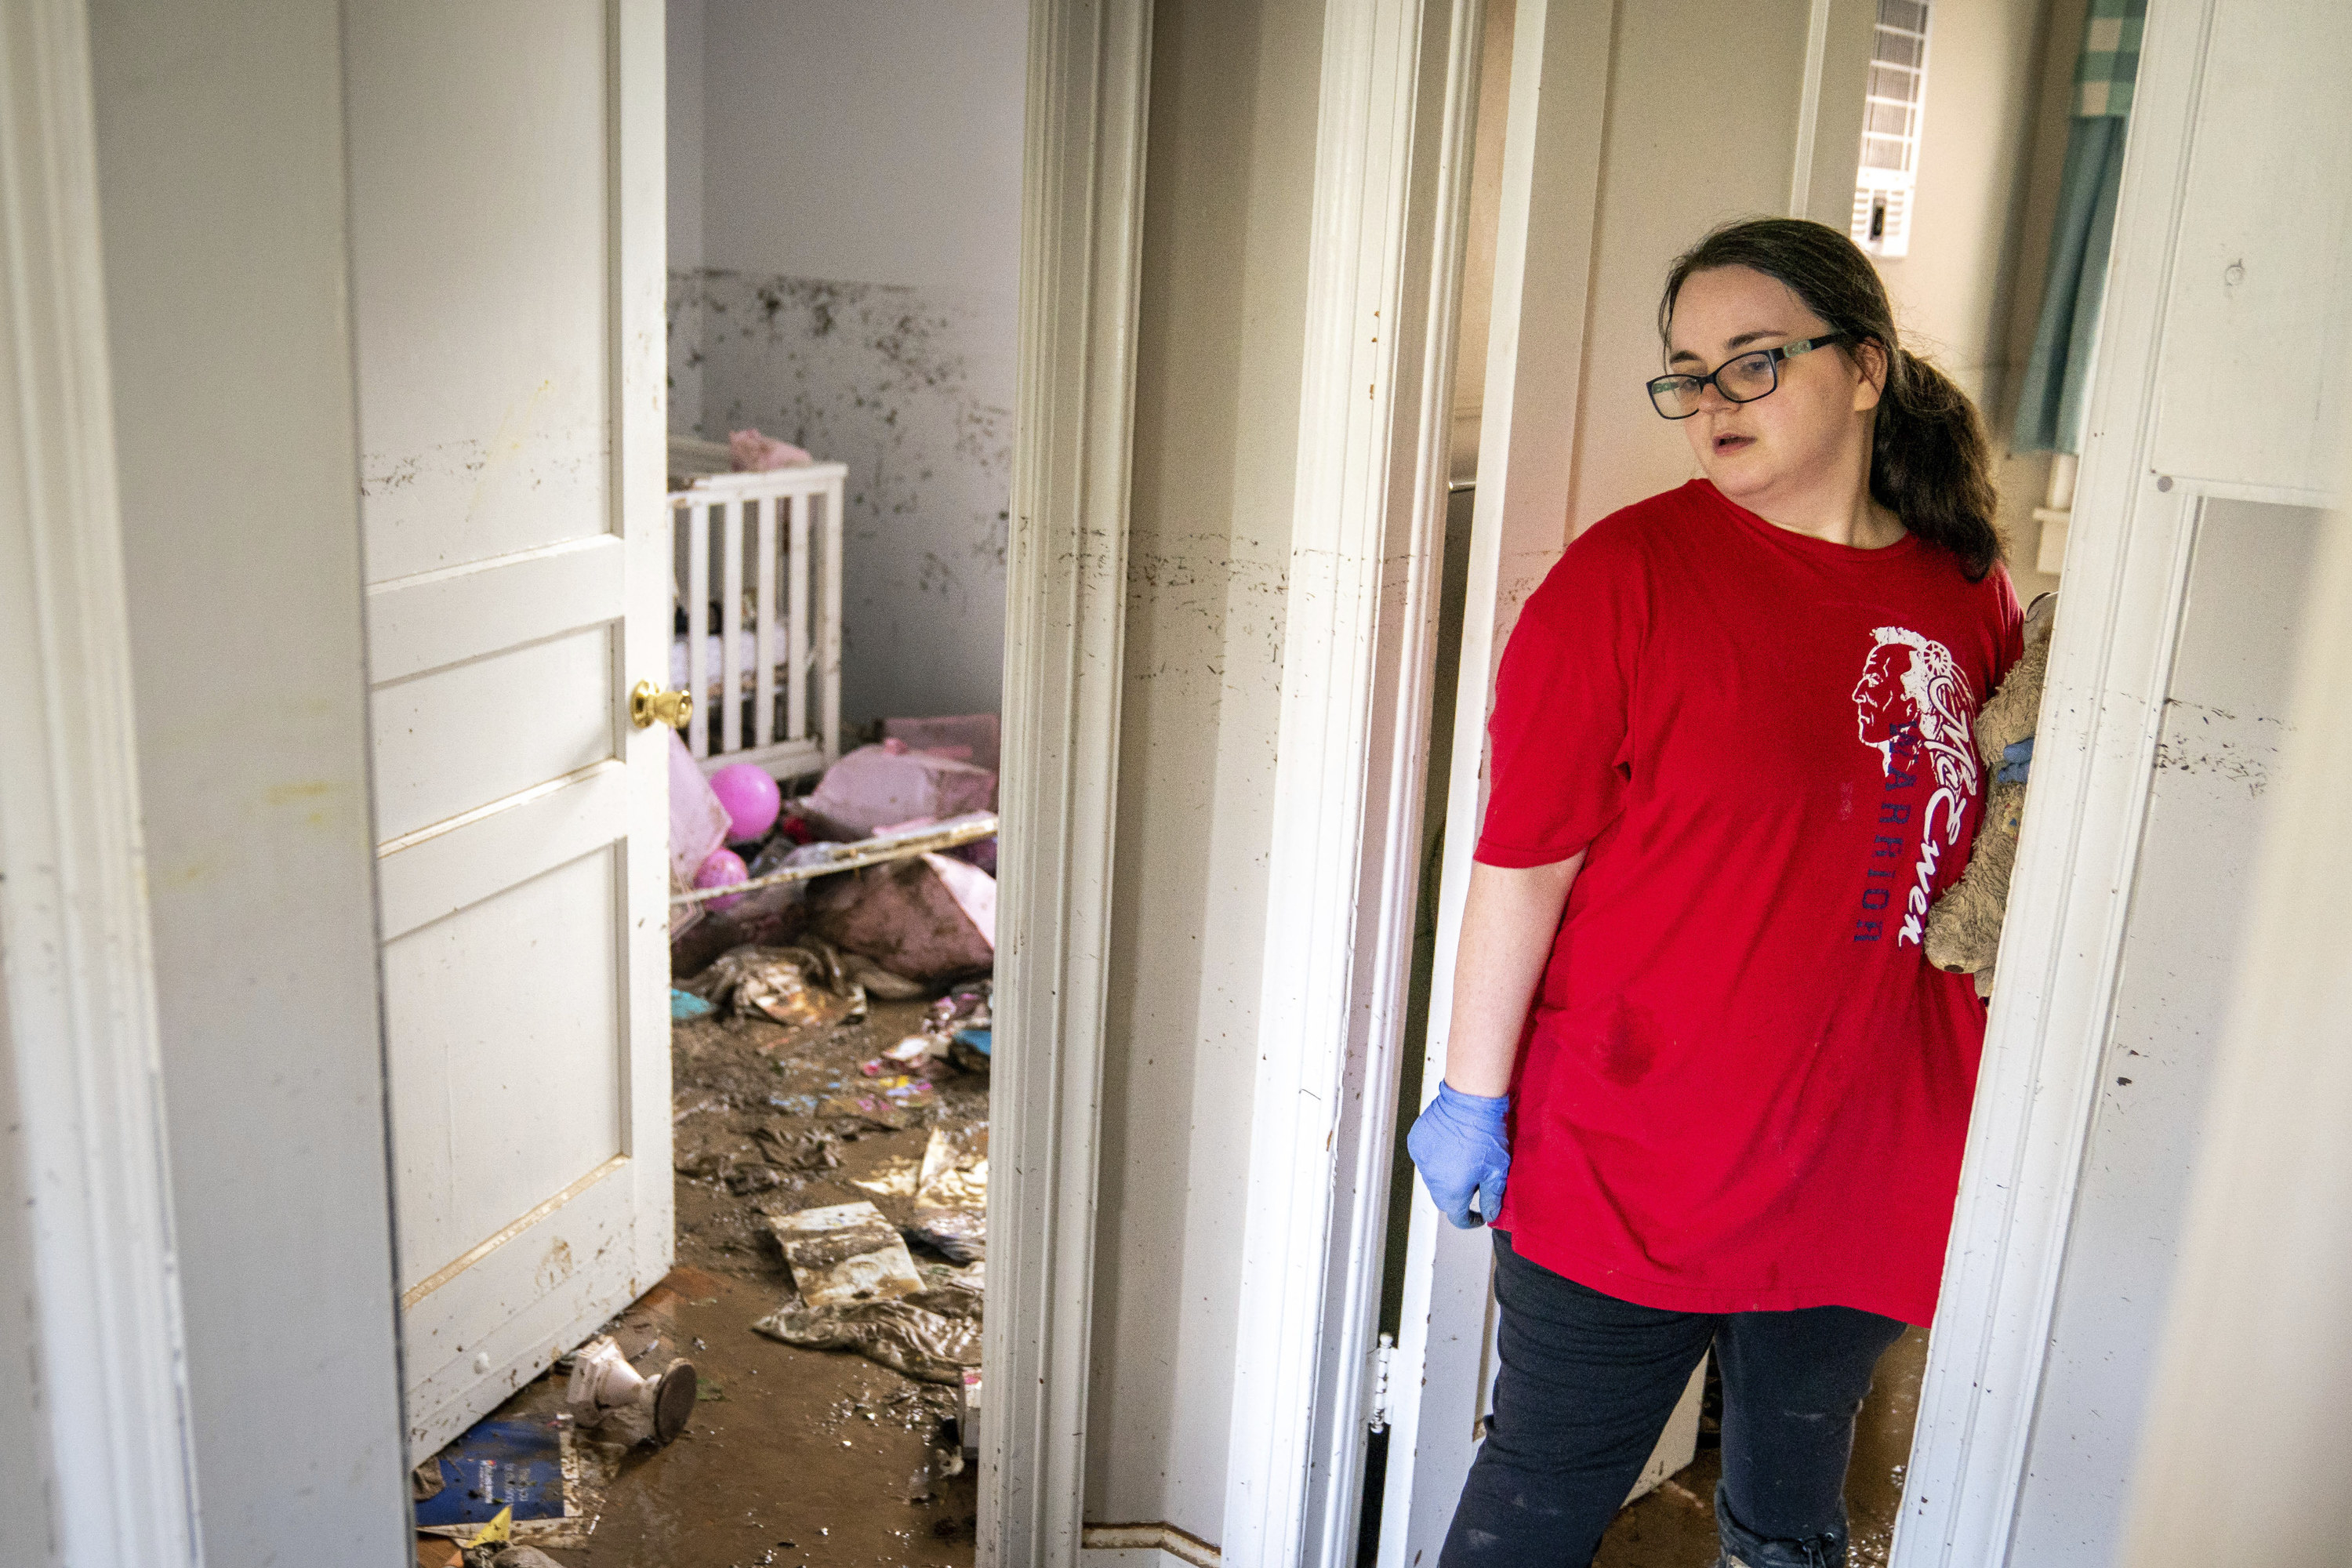 A woman stands by the doorway of a child's nursery with a muddy floor